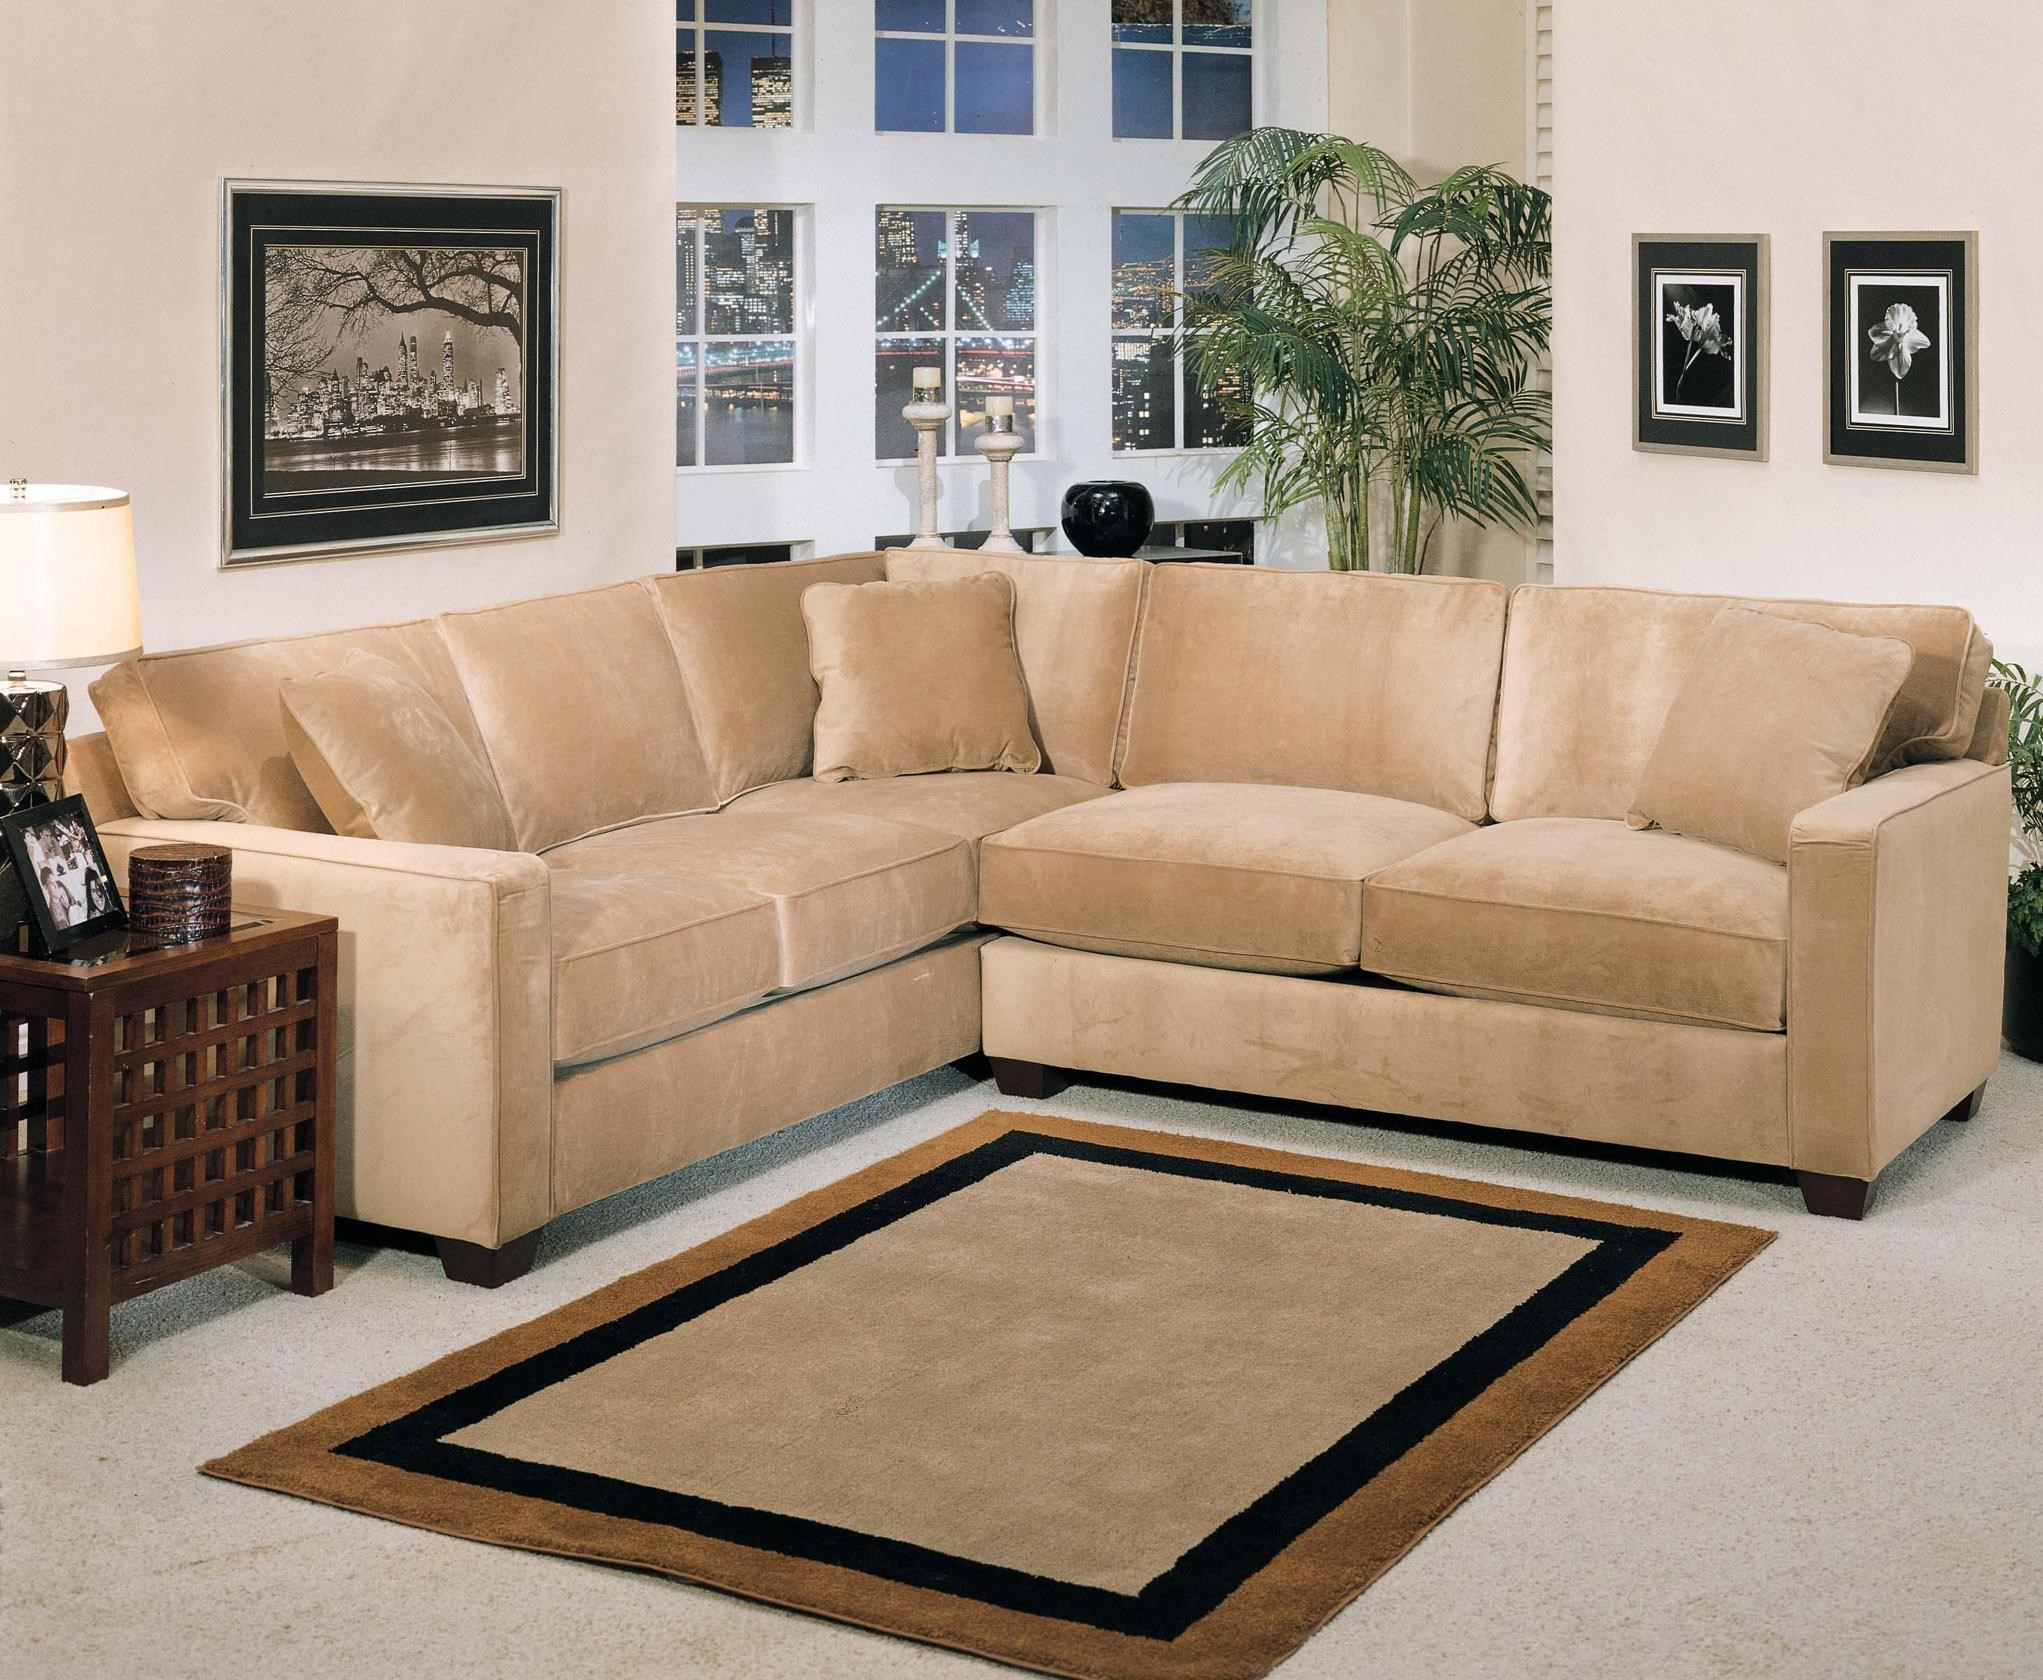 Jonathan Louis Bradford 2-Piece Stationary Sectional  sc 1 st  Rooms and Rest : jonathan louis choices sectional - Sectionals, Sofas & Couches